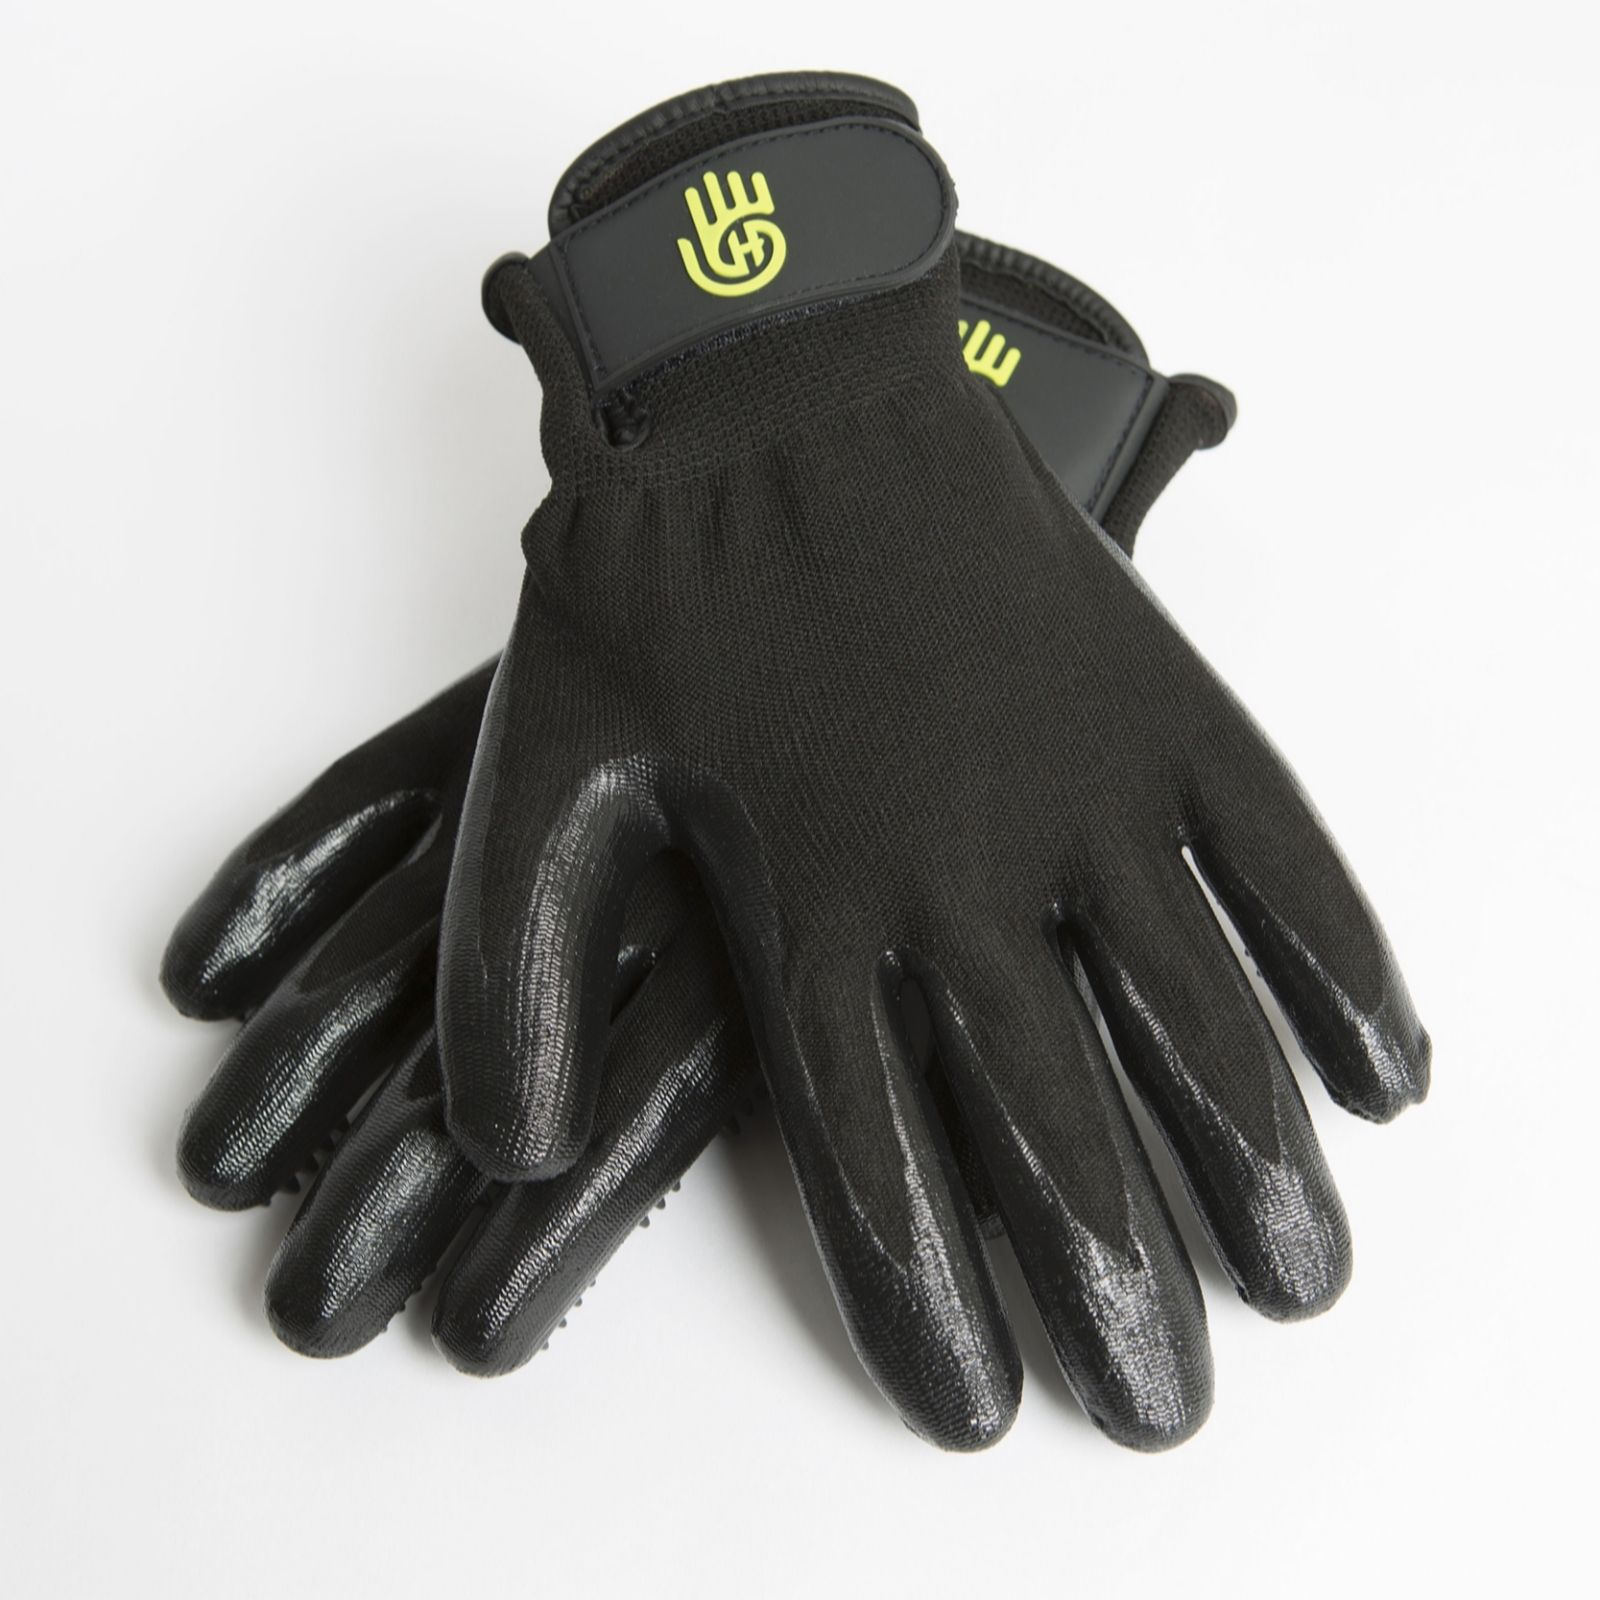 Hands On Pet Grooming Gloves QVC UK